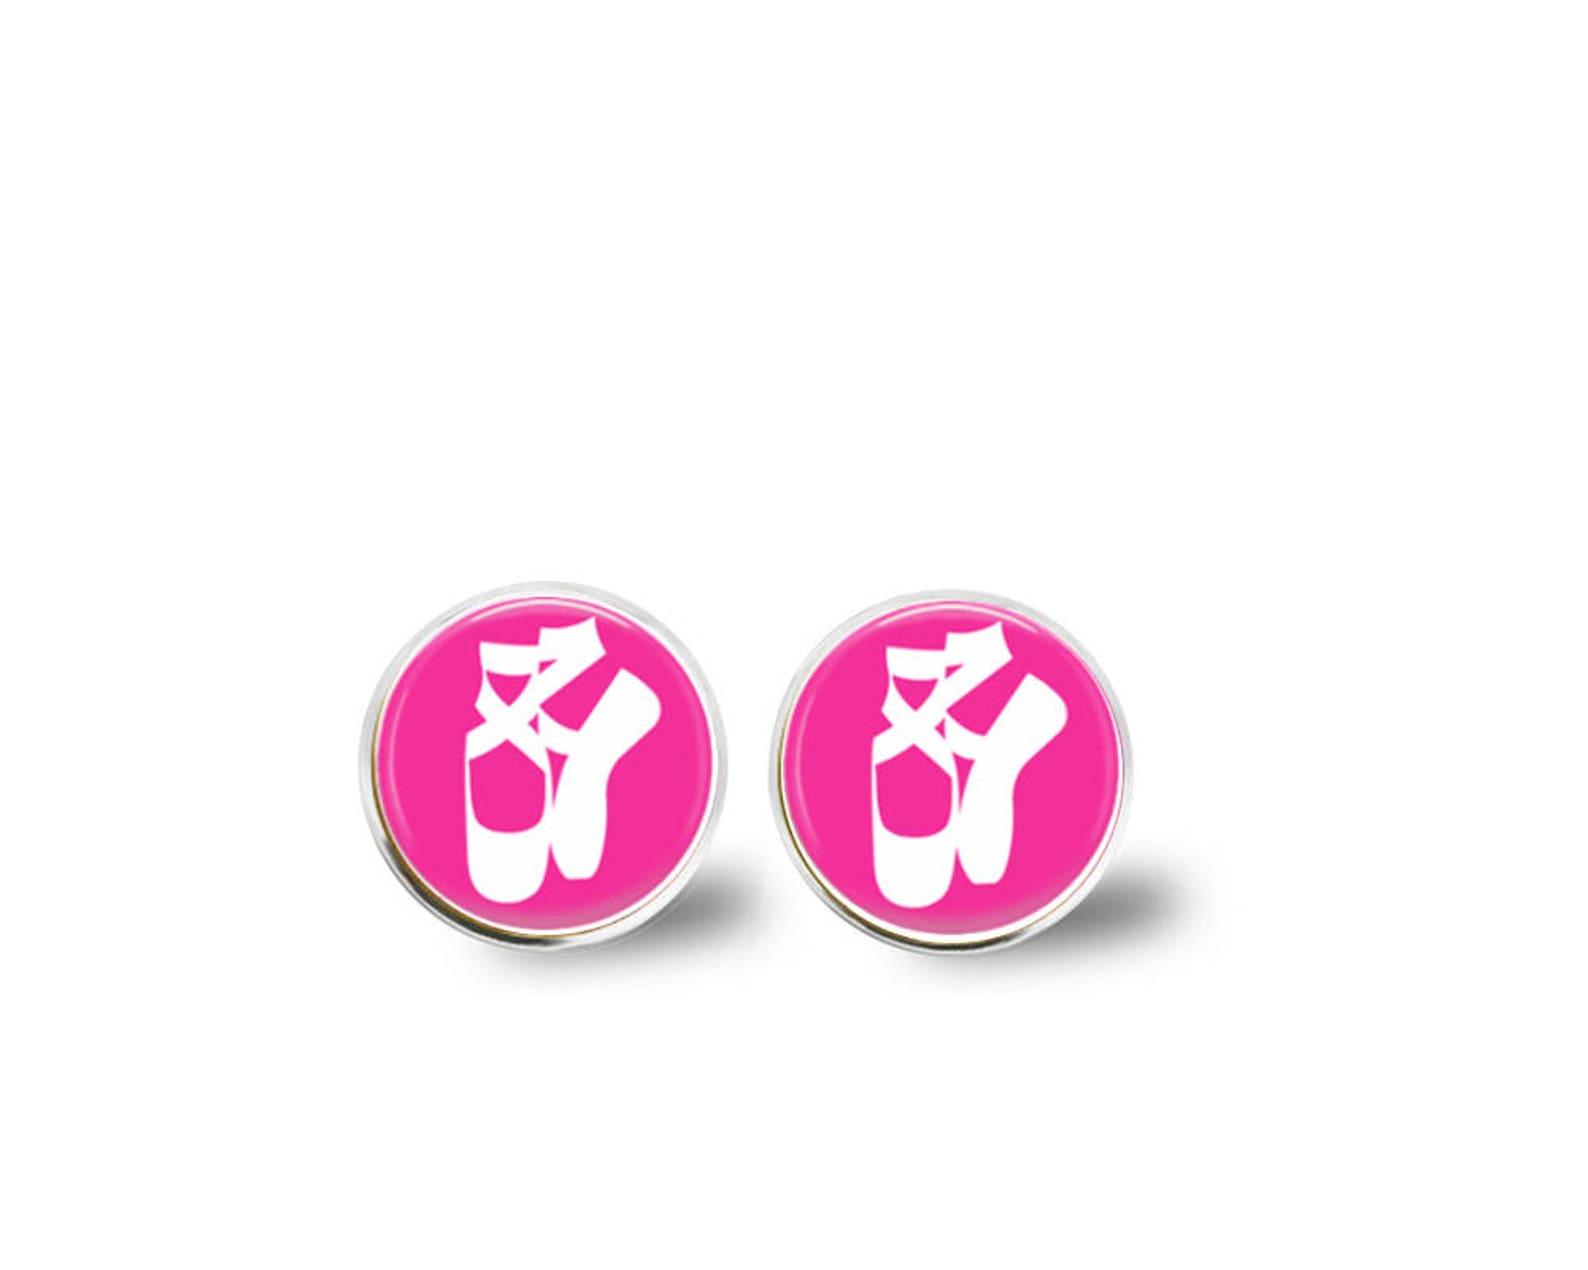 ballet earrings, dance earrings, studs, dangles, dance gift, dance teacher, pink, monogram earrings, name earrings, personalized